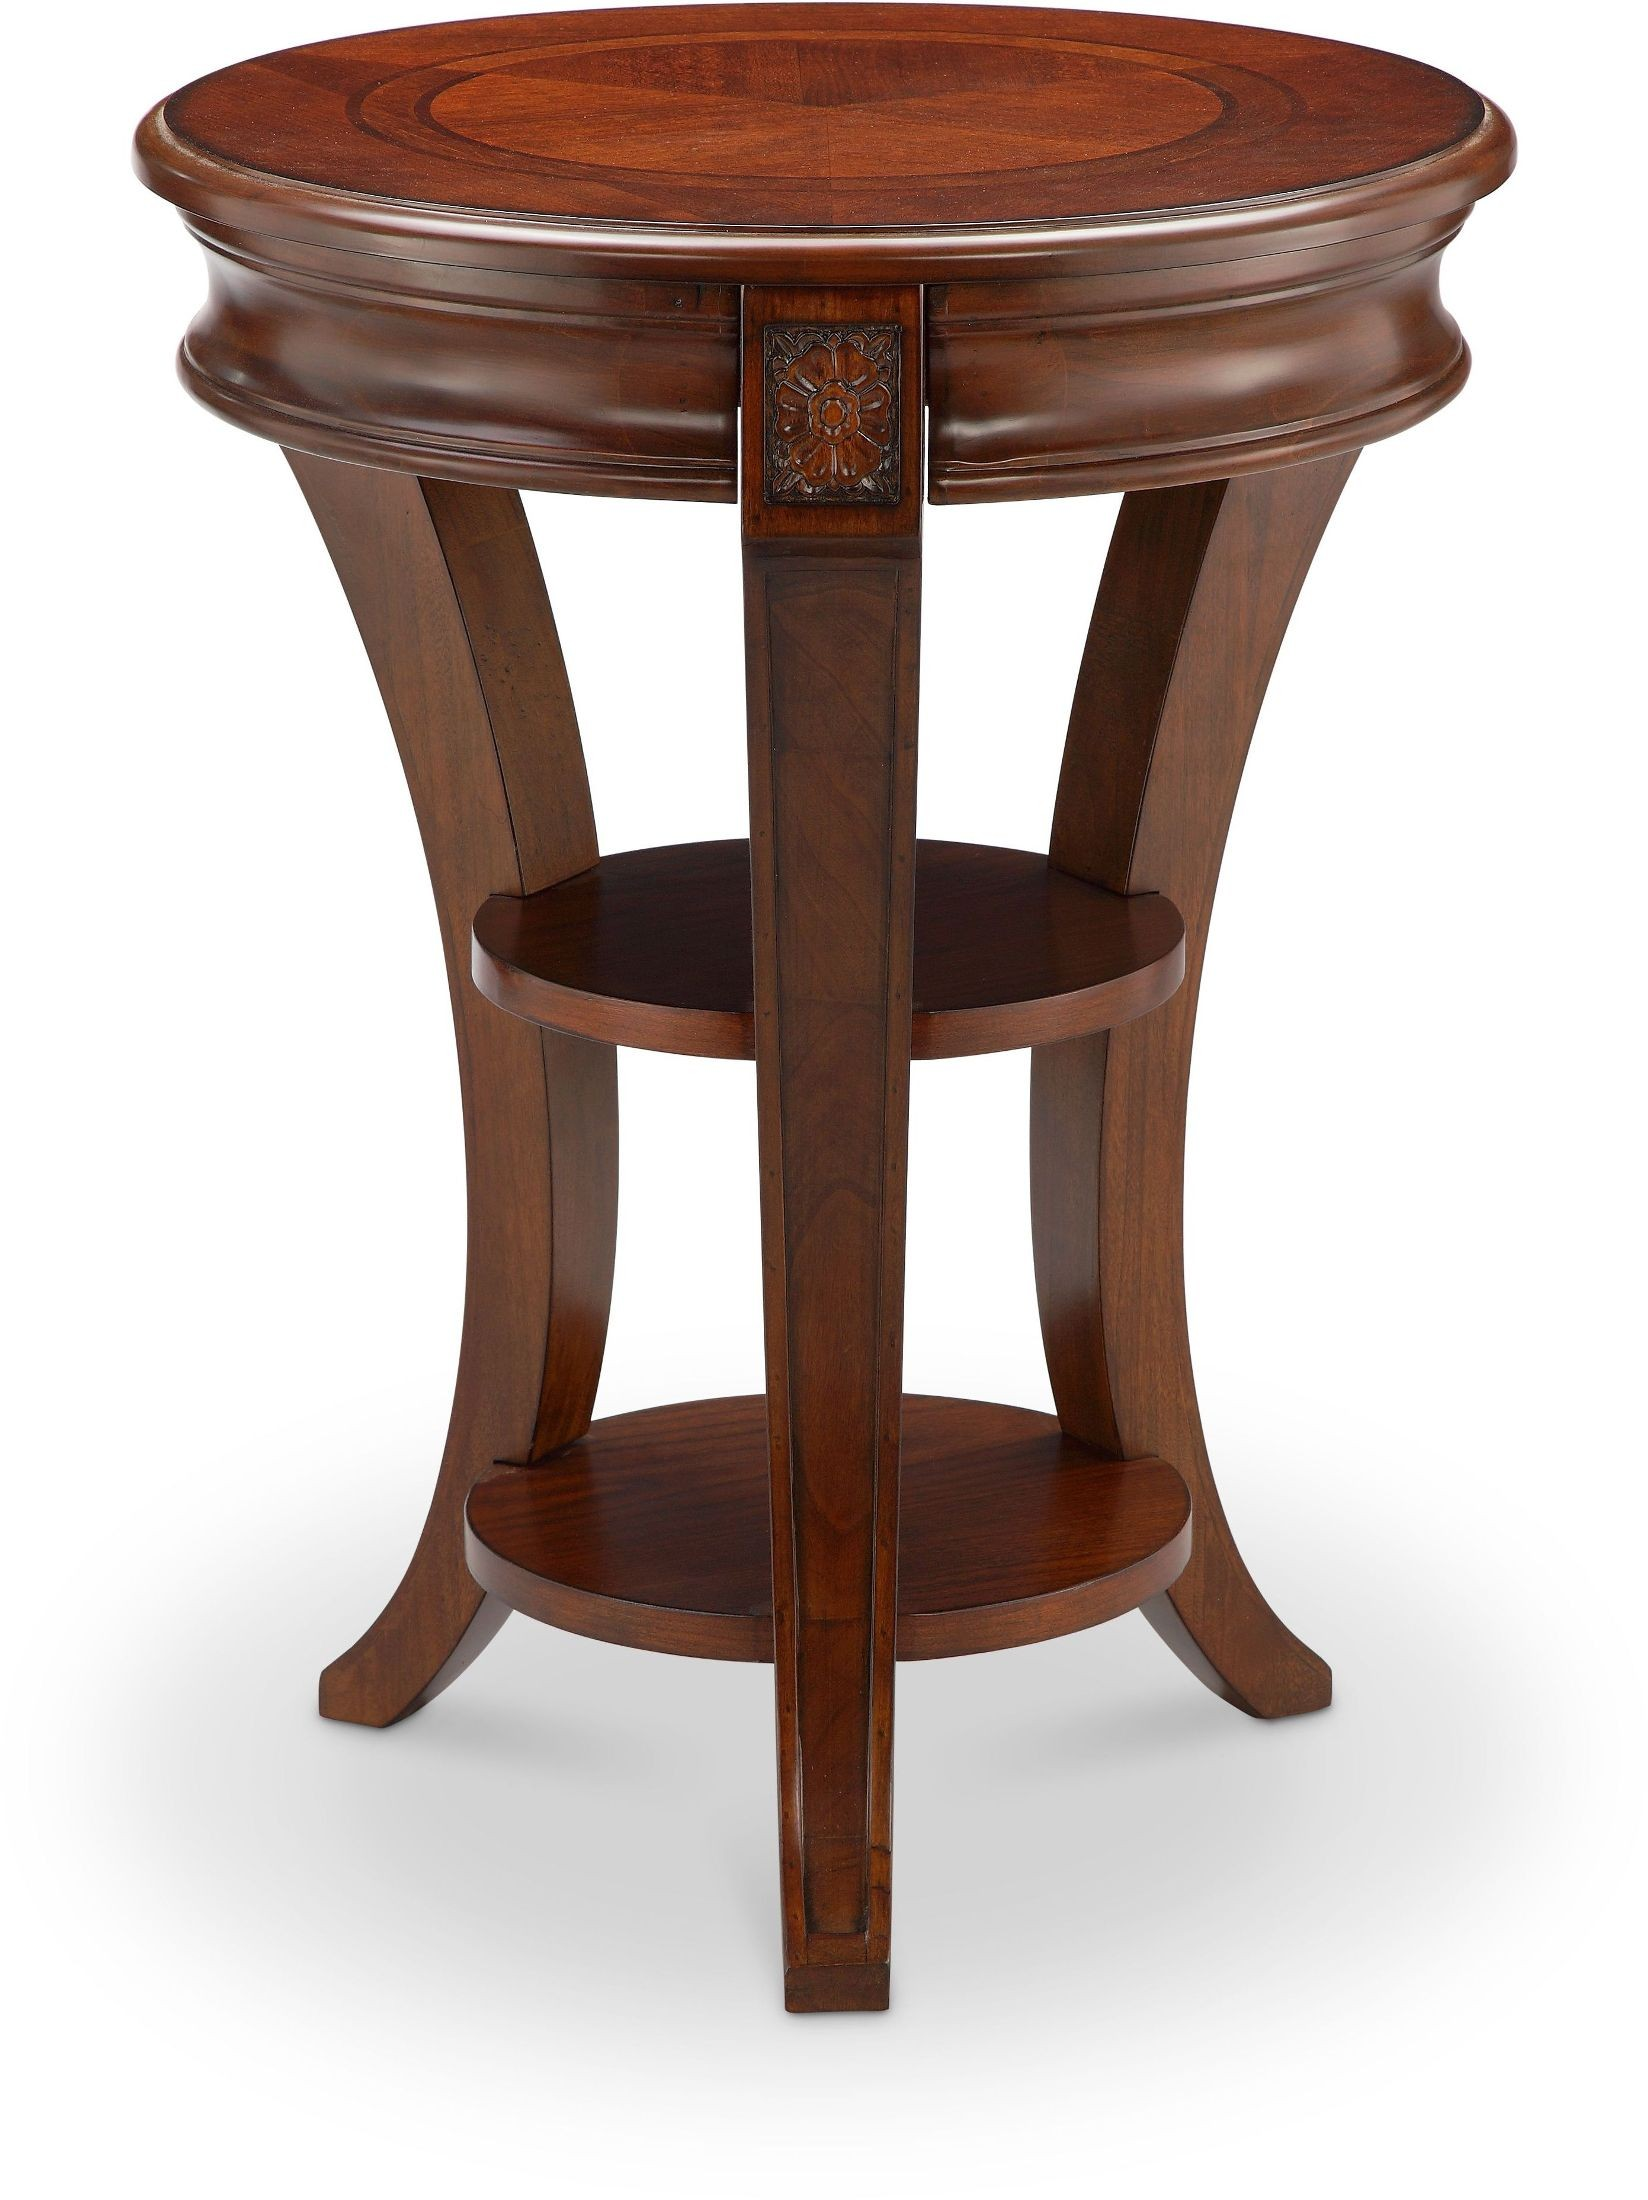 Circular End Tables Winslet Cherry Round Accent Table T4115 35 Magnussen Home